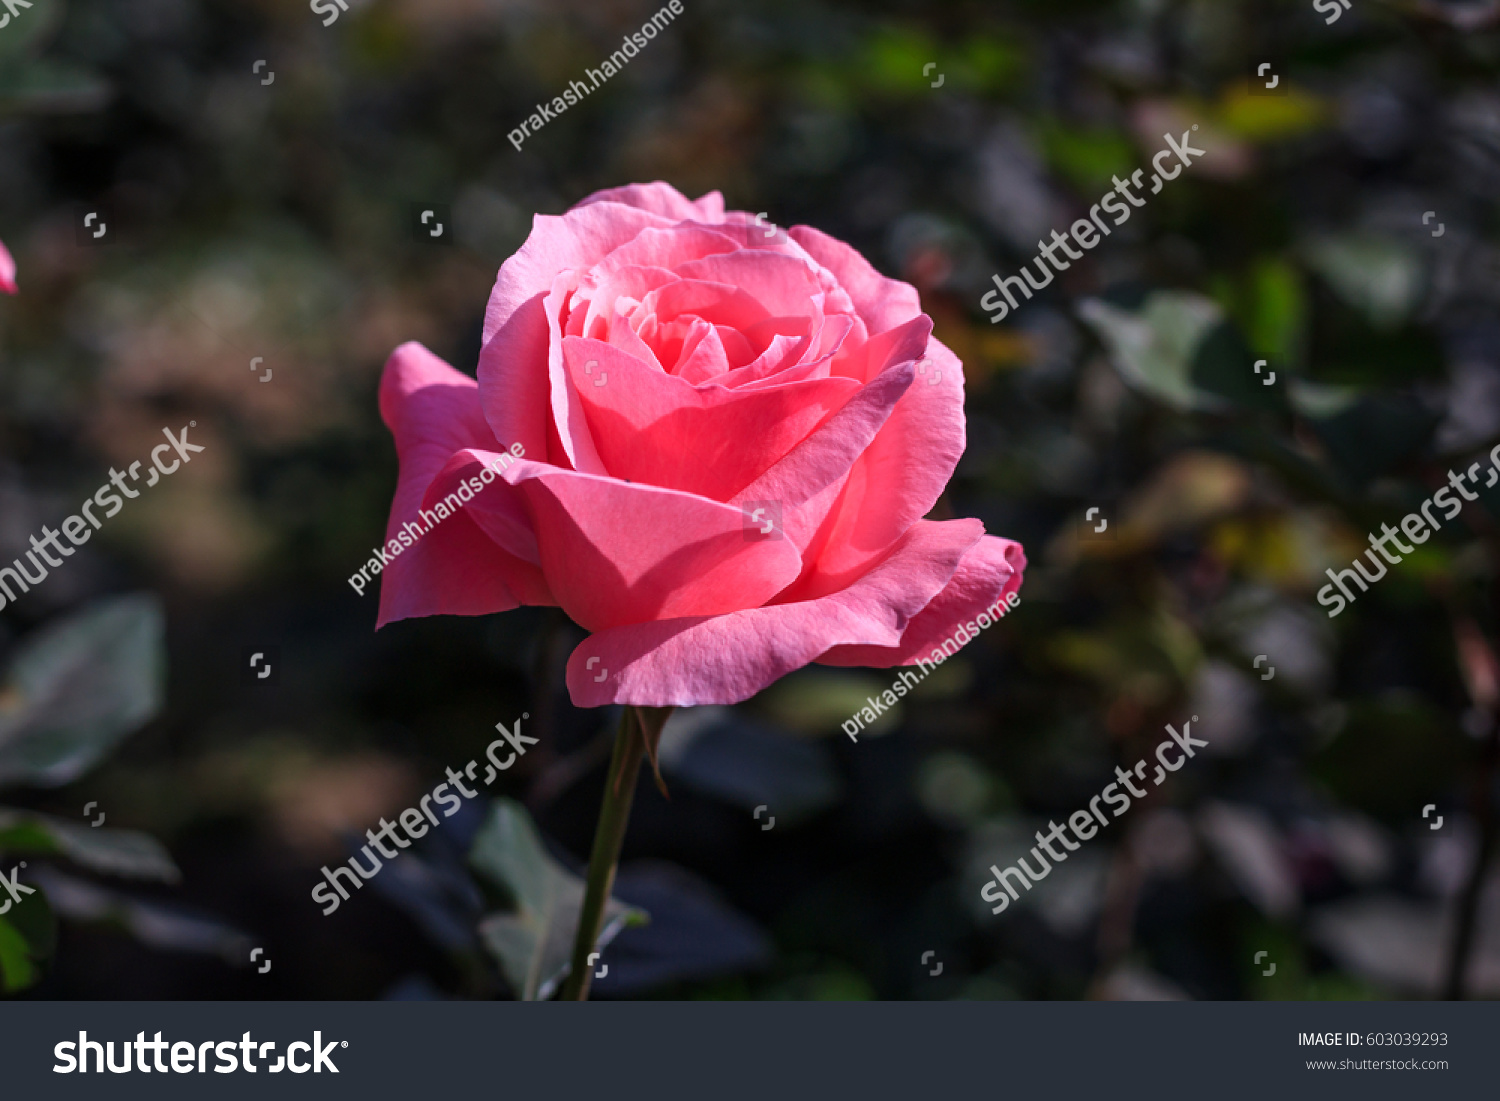 Early morning beautiful rose flower garden stock photo edit now early morning beautiful rose flower garden dew on roses with awesome colors and verity with izmirmasajfo